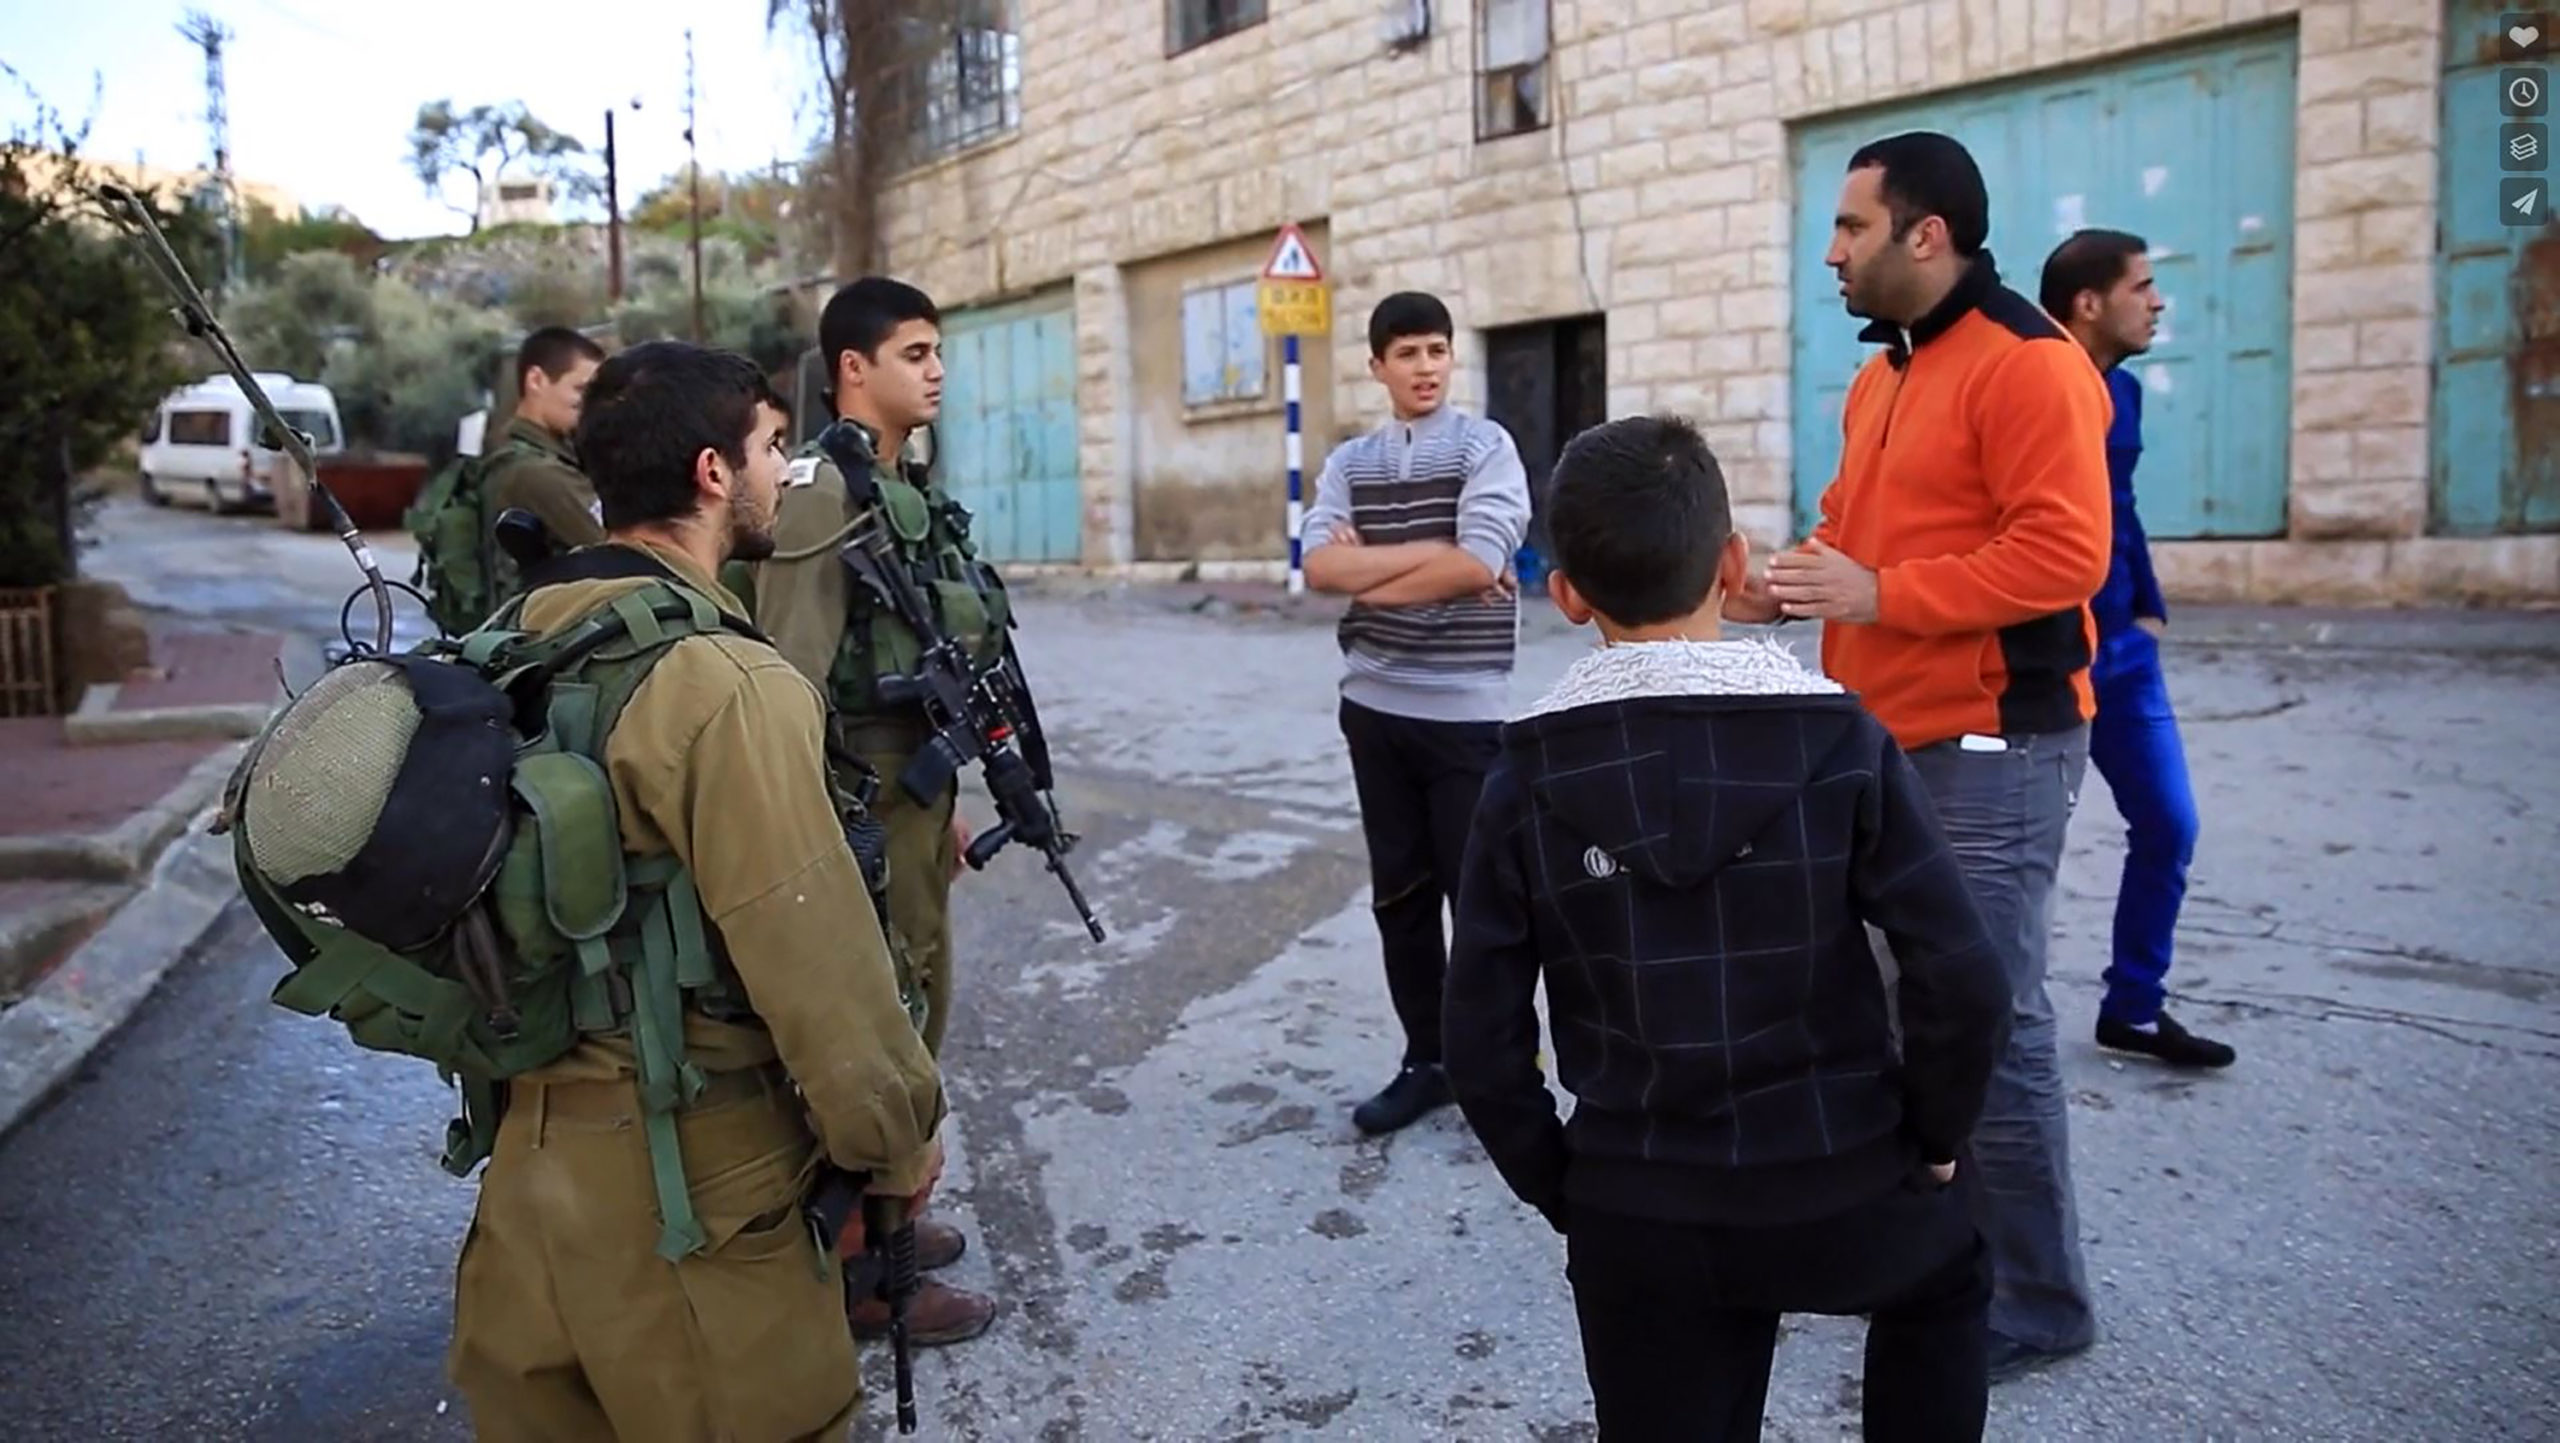 Next Generation's Perspectives on the Occupation: Three Student Films